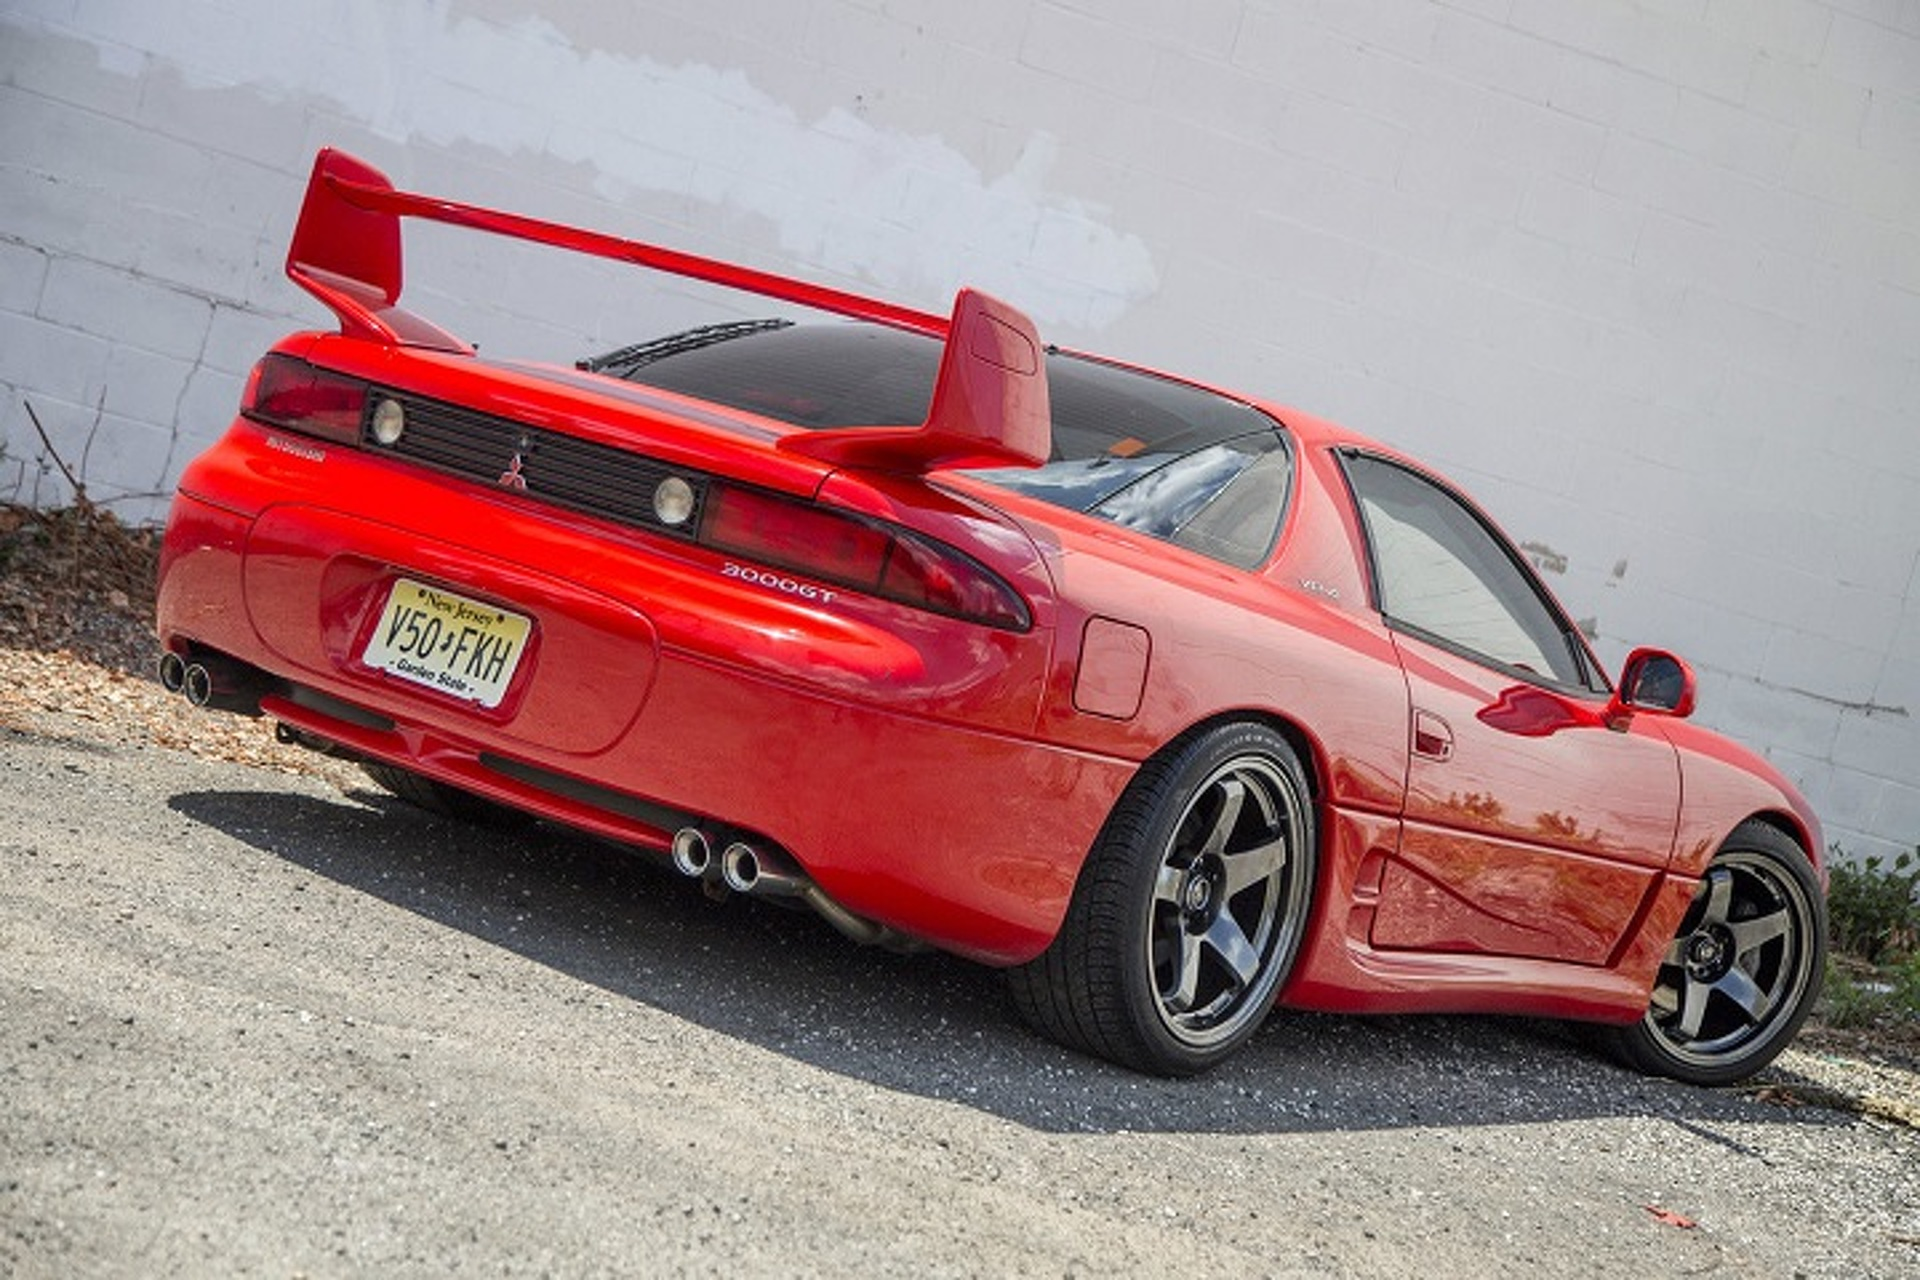 Extremely Clean 1999 Mitsubishi 3000gt Vr4 Will Bring Out